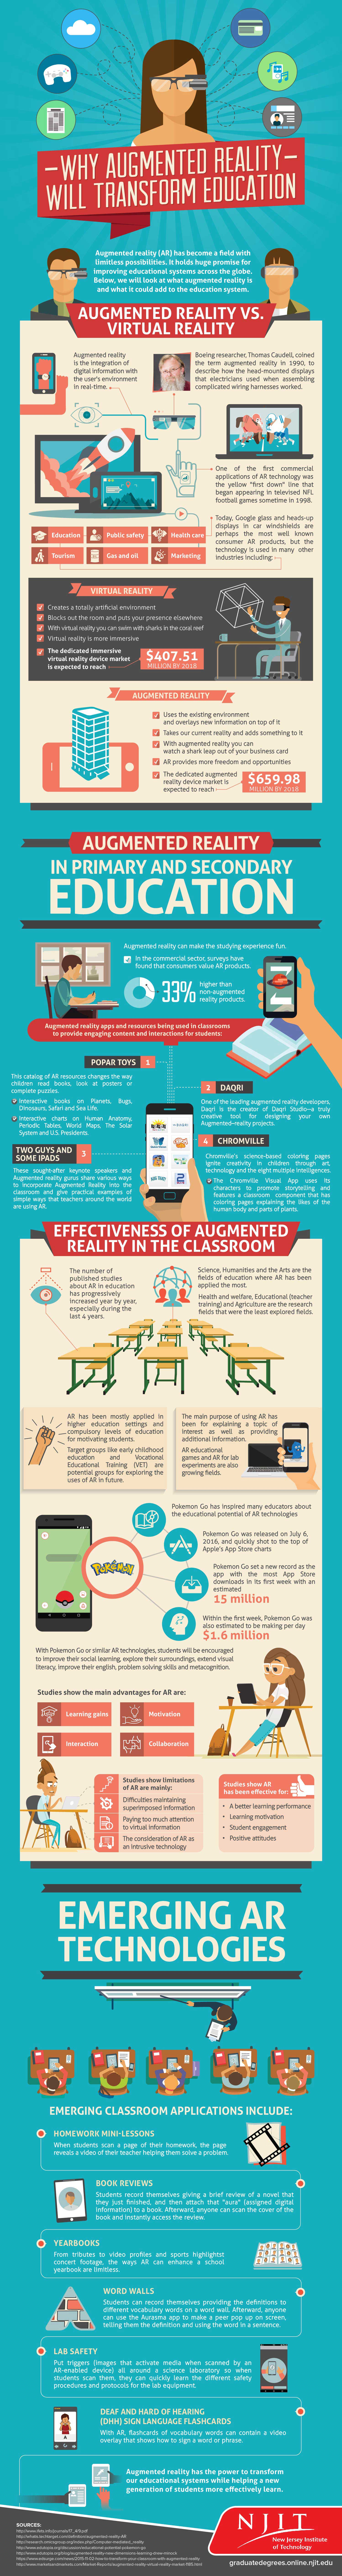 augmented-reality-in-education-infographic